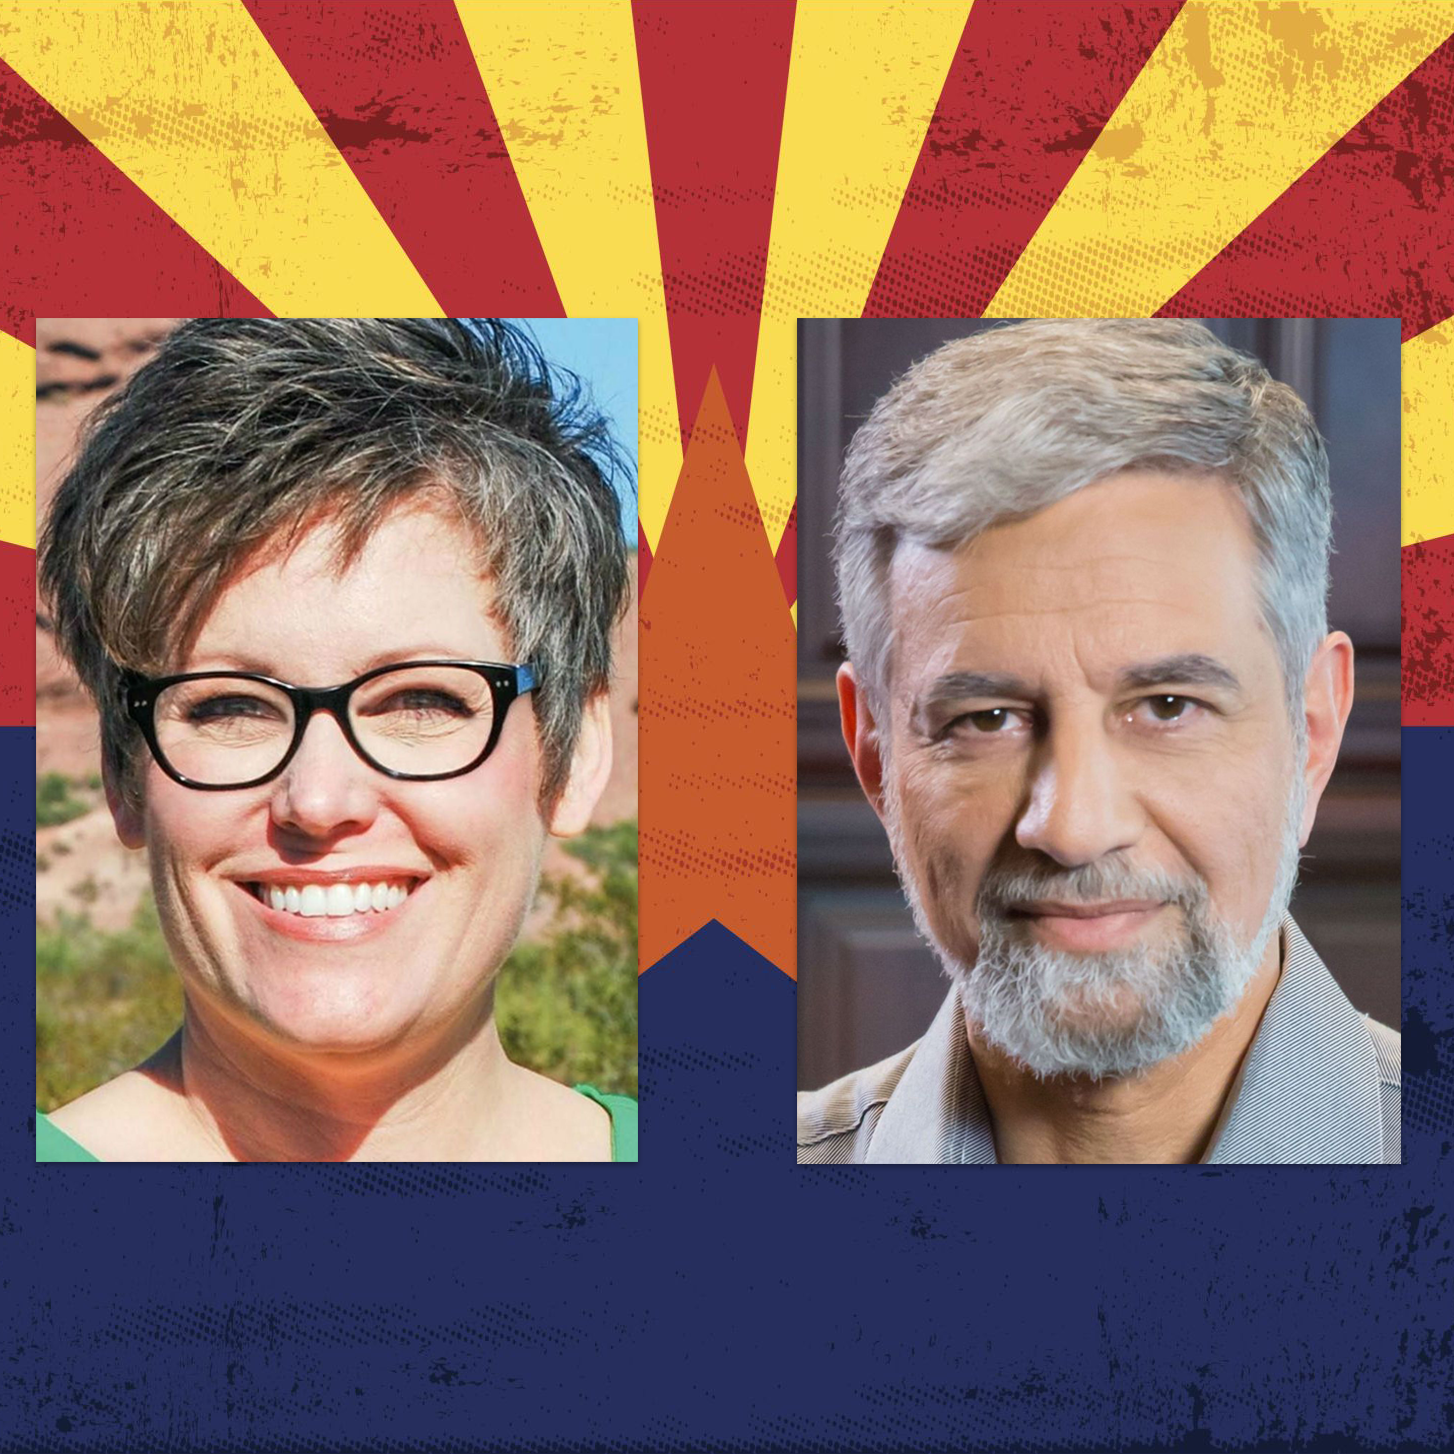 Secretary of state: Steve Gaynor and Katie Hobbs remain neck-and-neck in Arizona's closest race